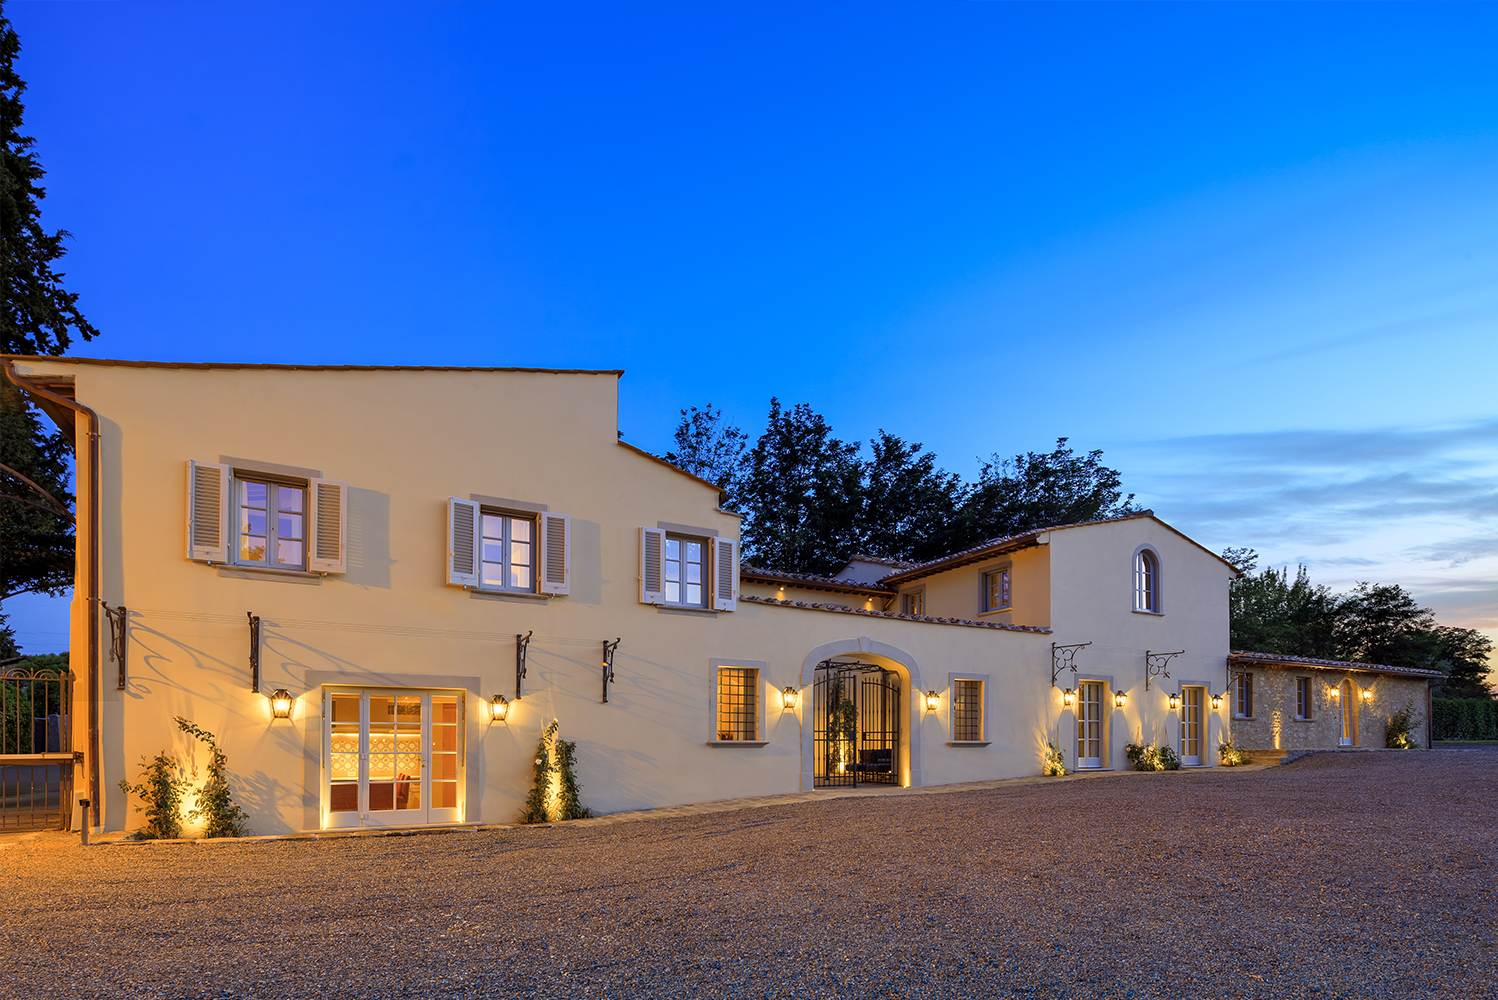 Villa La Massa completed a full-scale restoration of a 19th century farmhouse located on the grounds of the hotel.